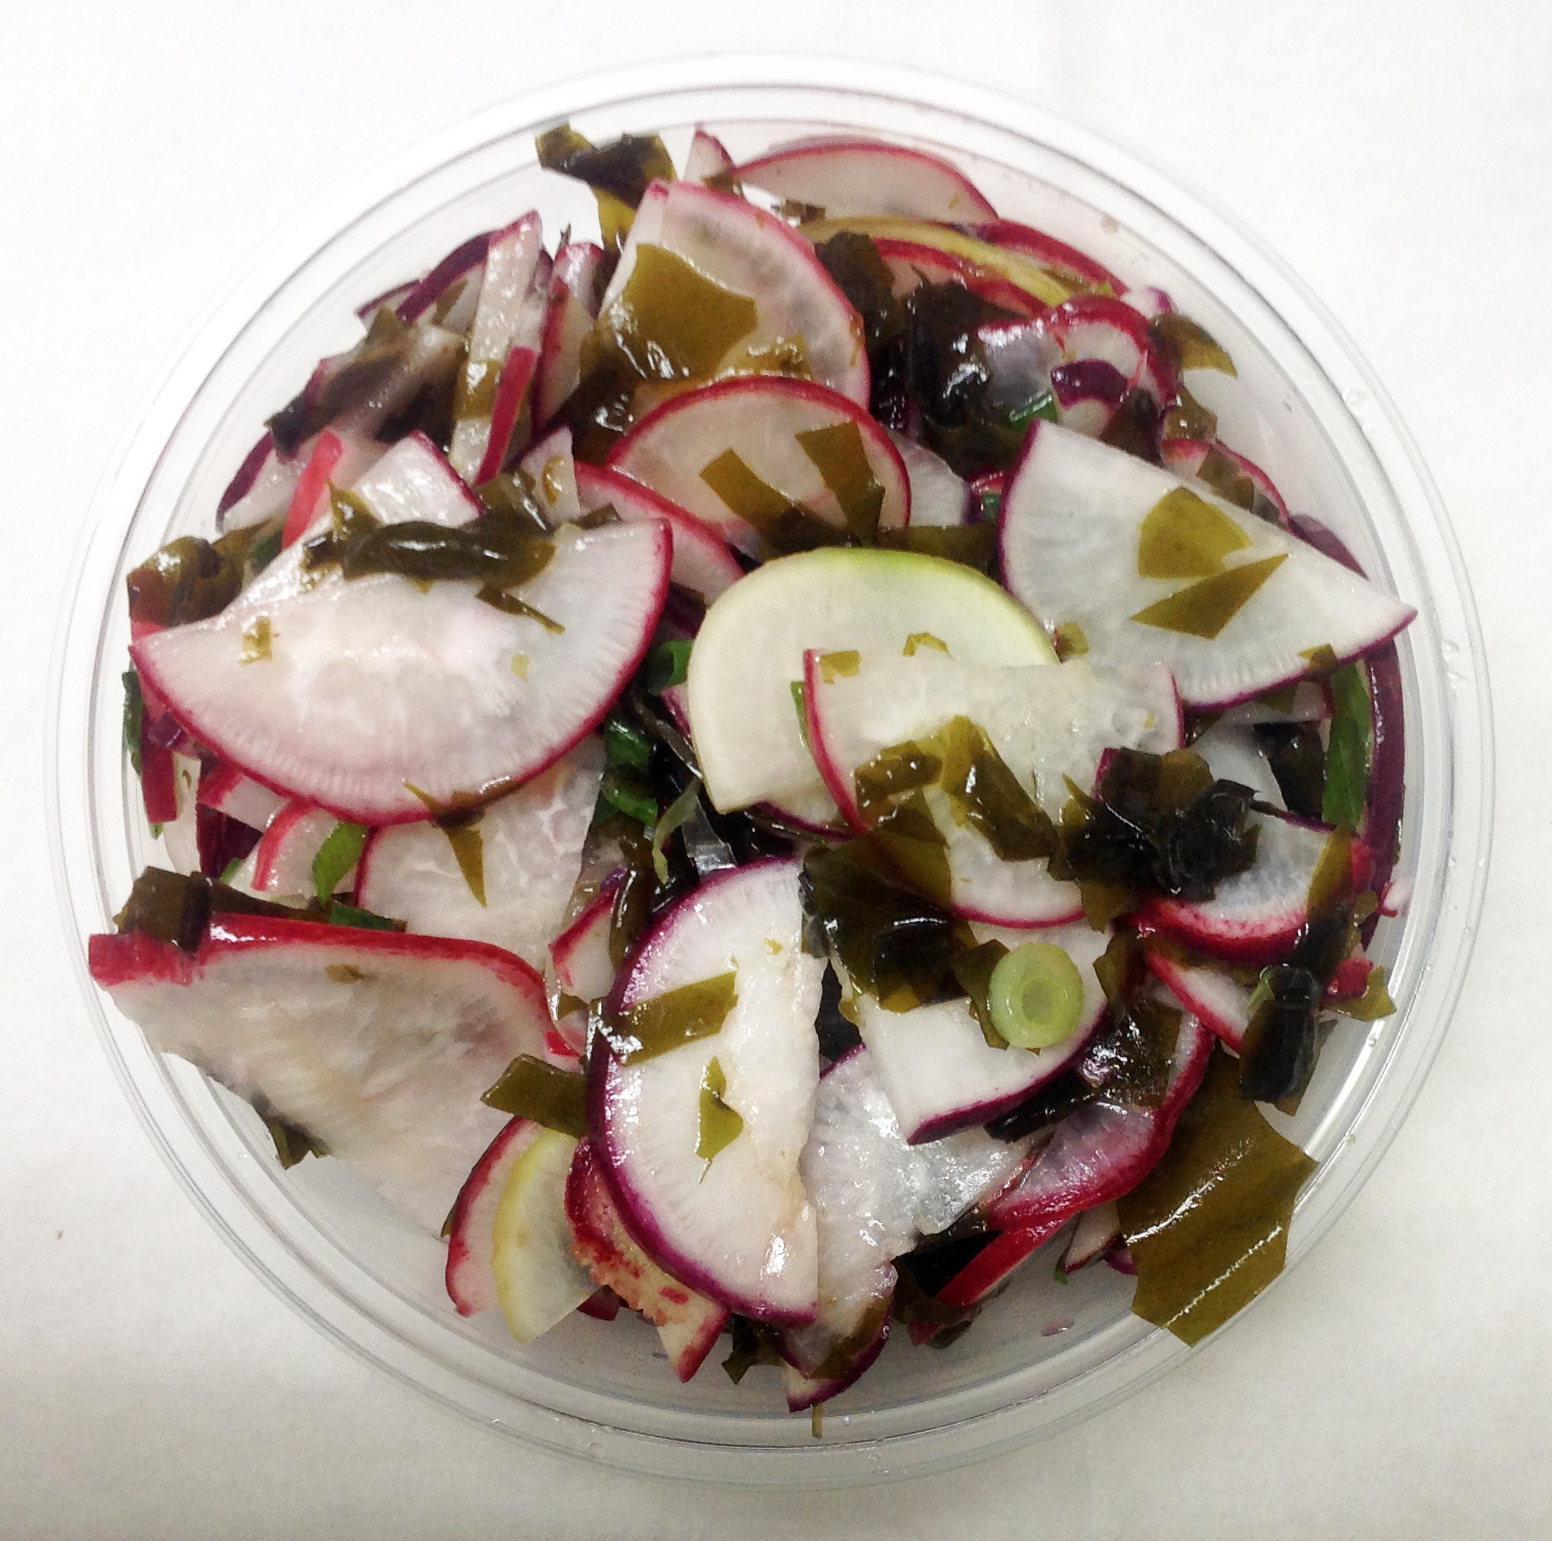 Red-radish-wakame-seaweed-and-citrus.jpg